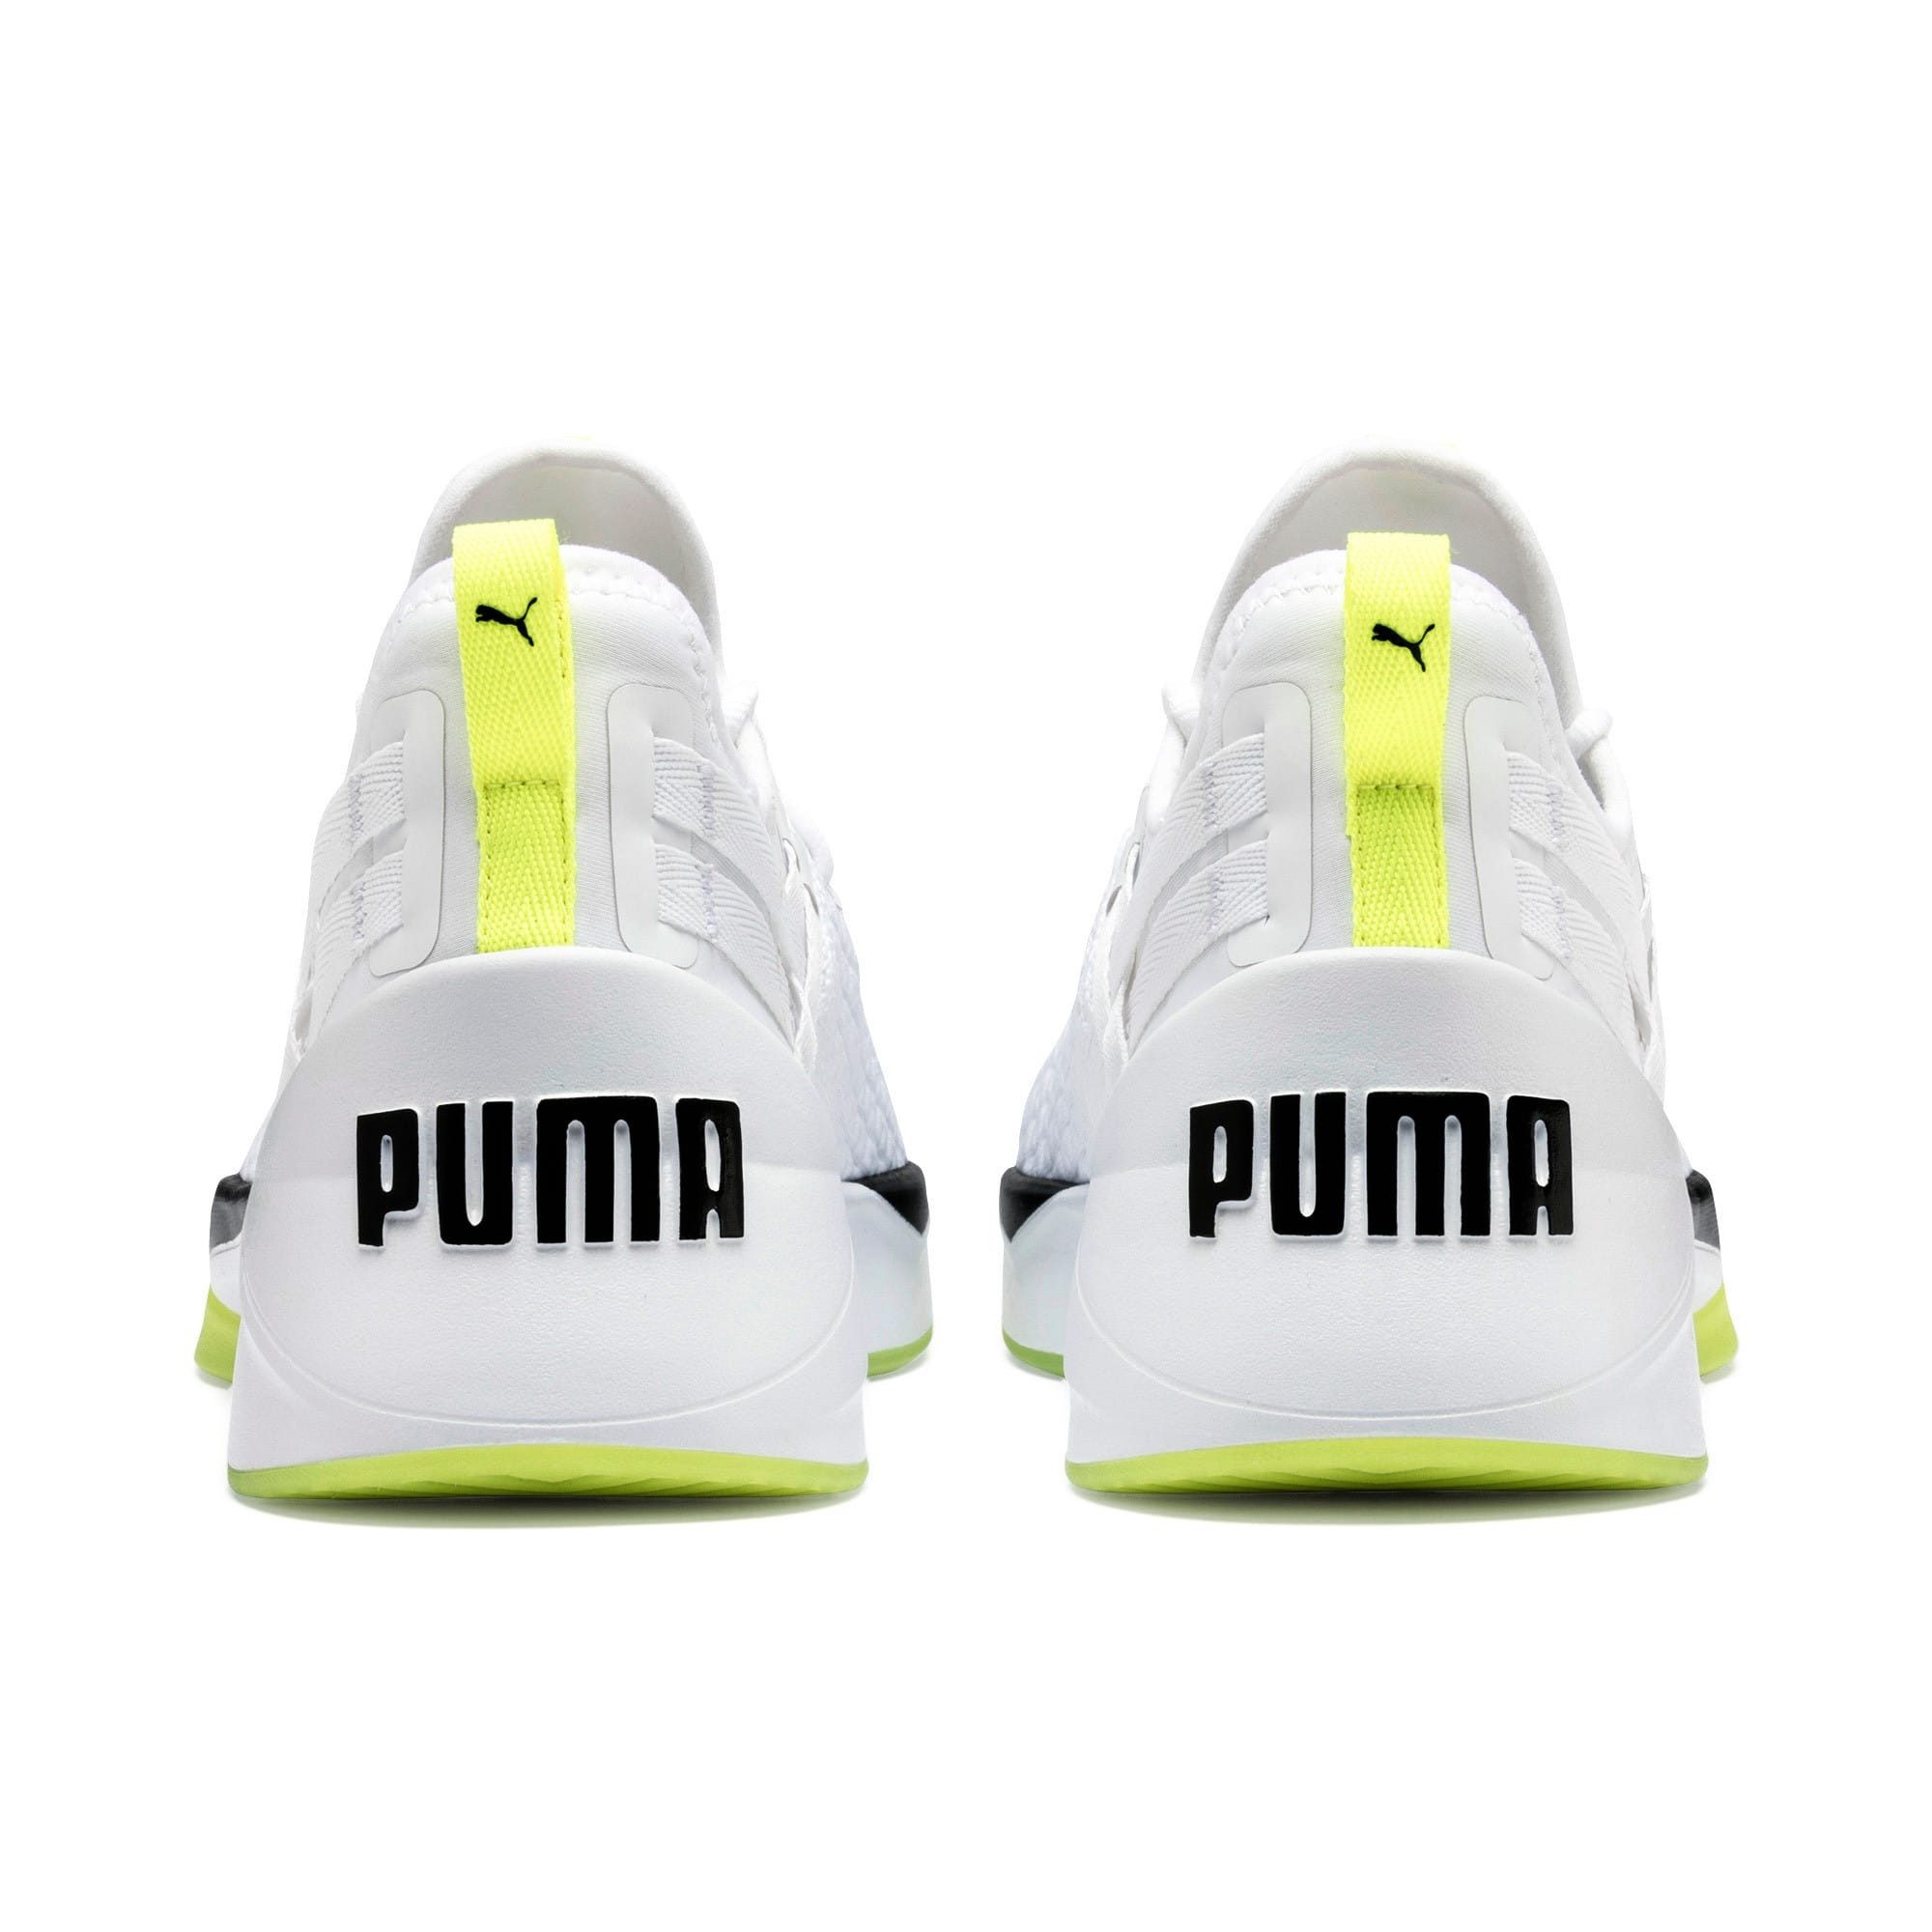 Jaab XT Damen Trainingsschuhe, Puma White-Yellow Alert, large